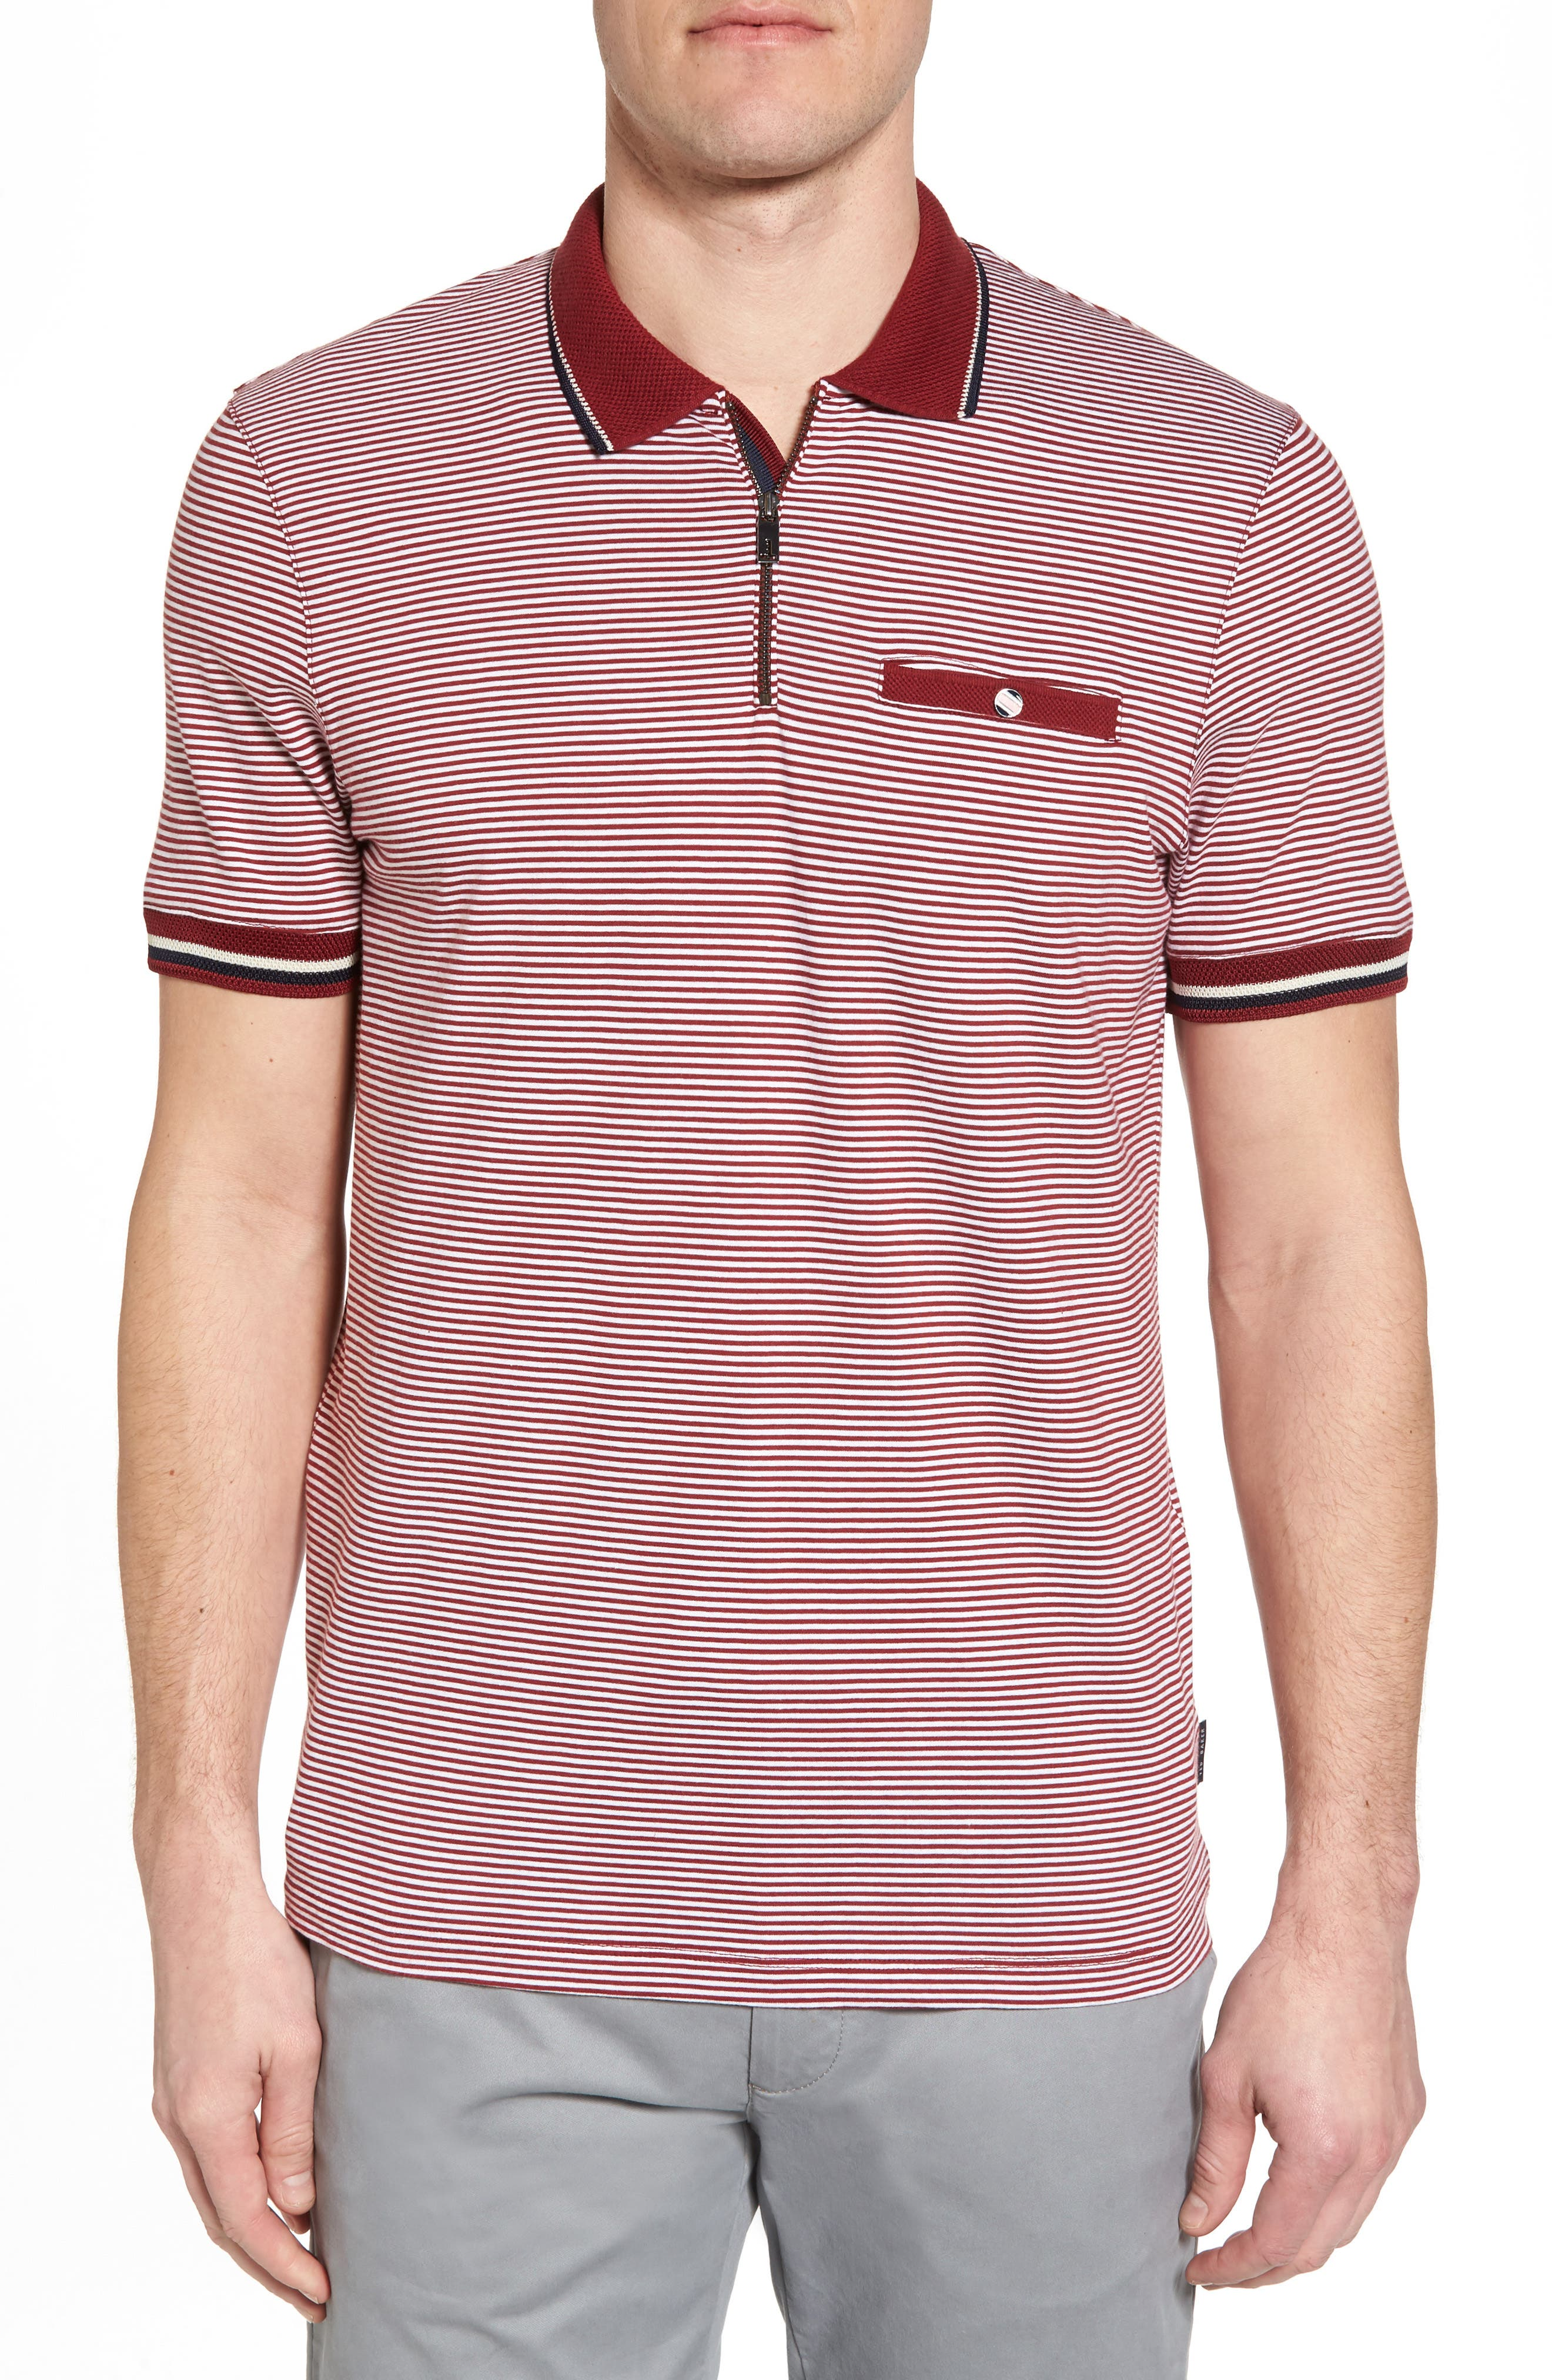 Whiptt Trim Fit Zip Polo,                             Main thumbnail 1, color,                             Dark Red